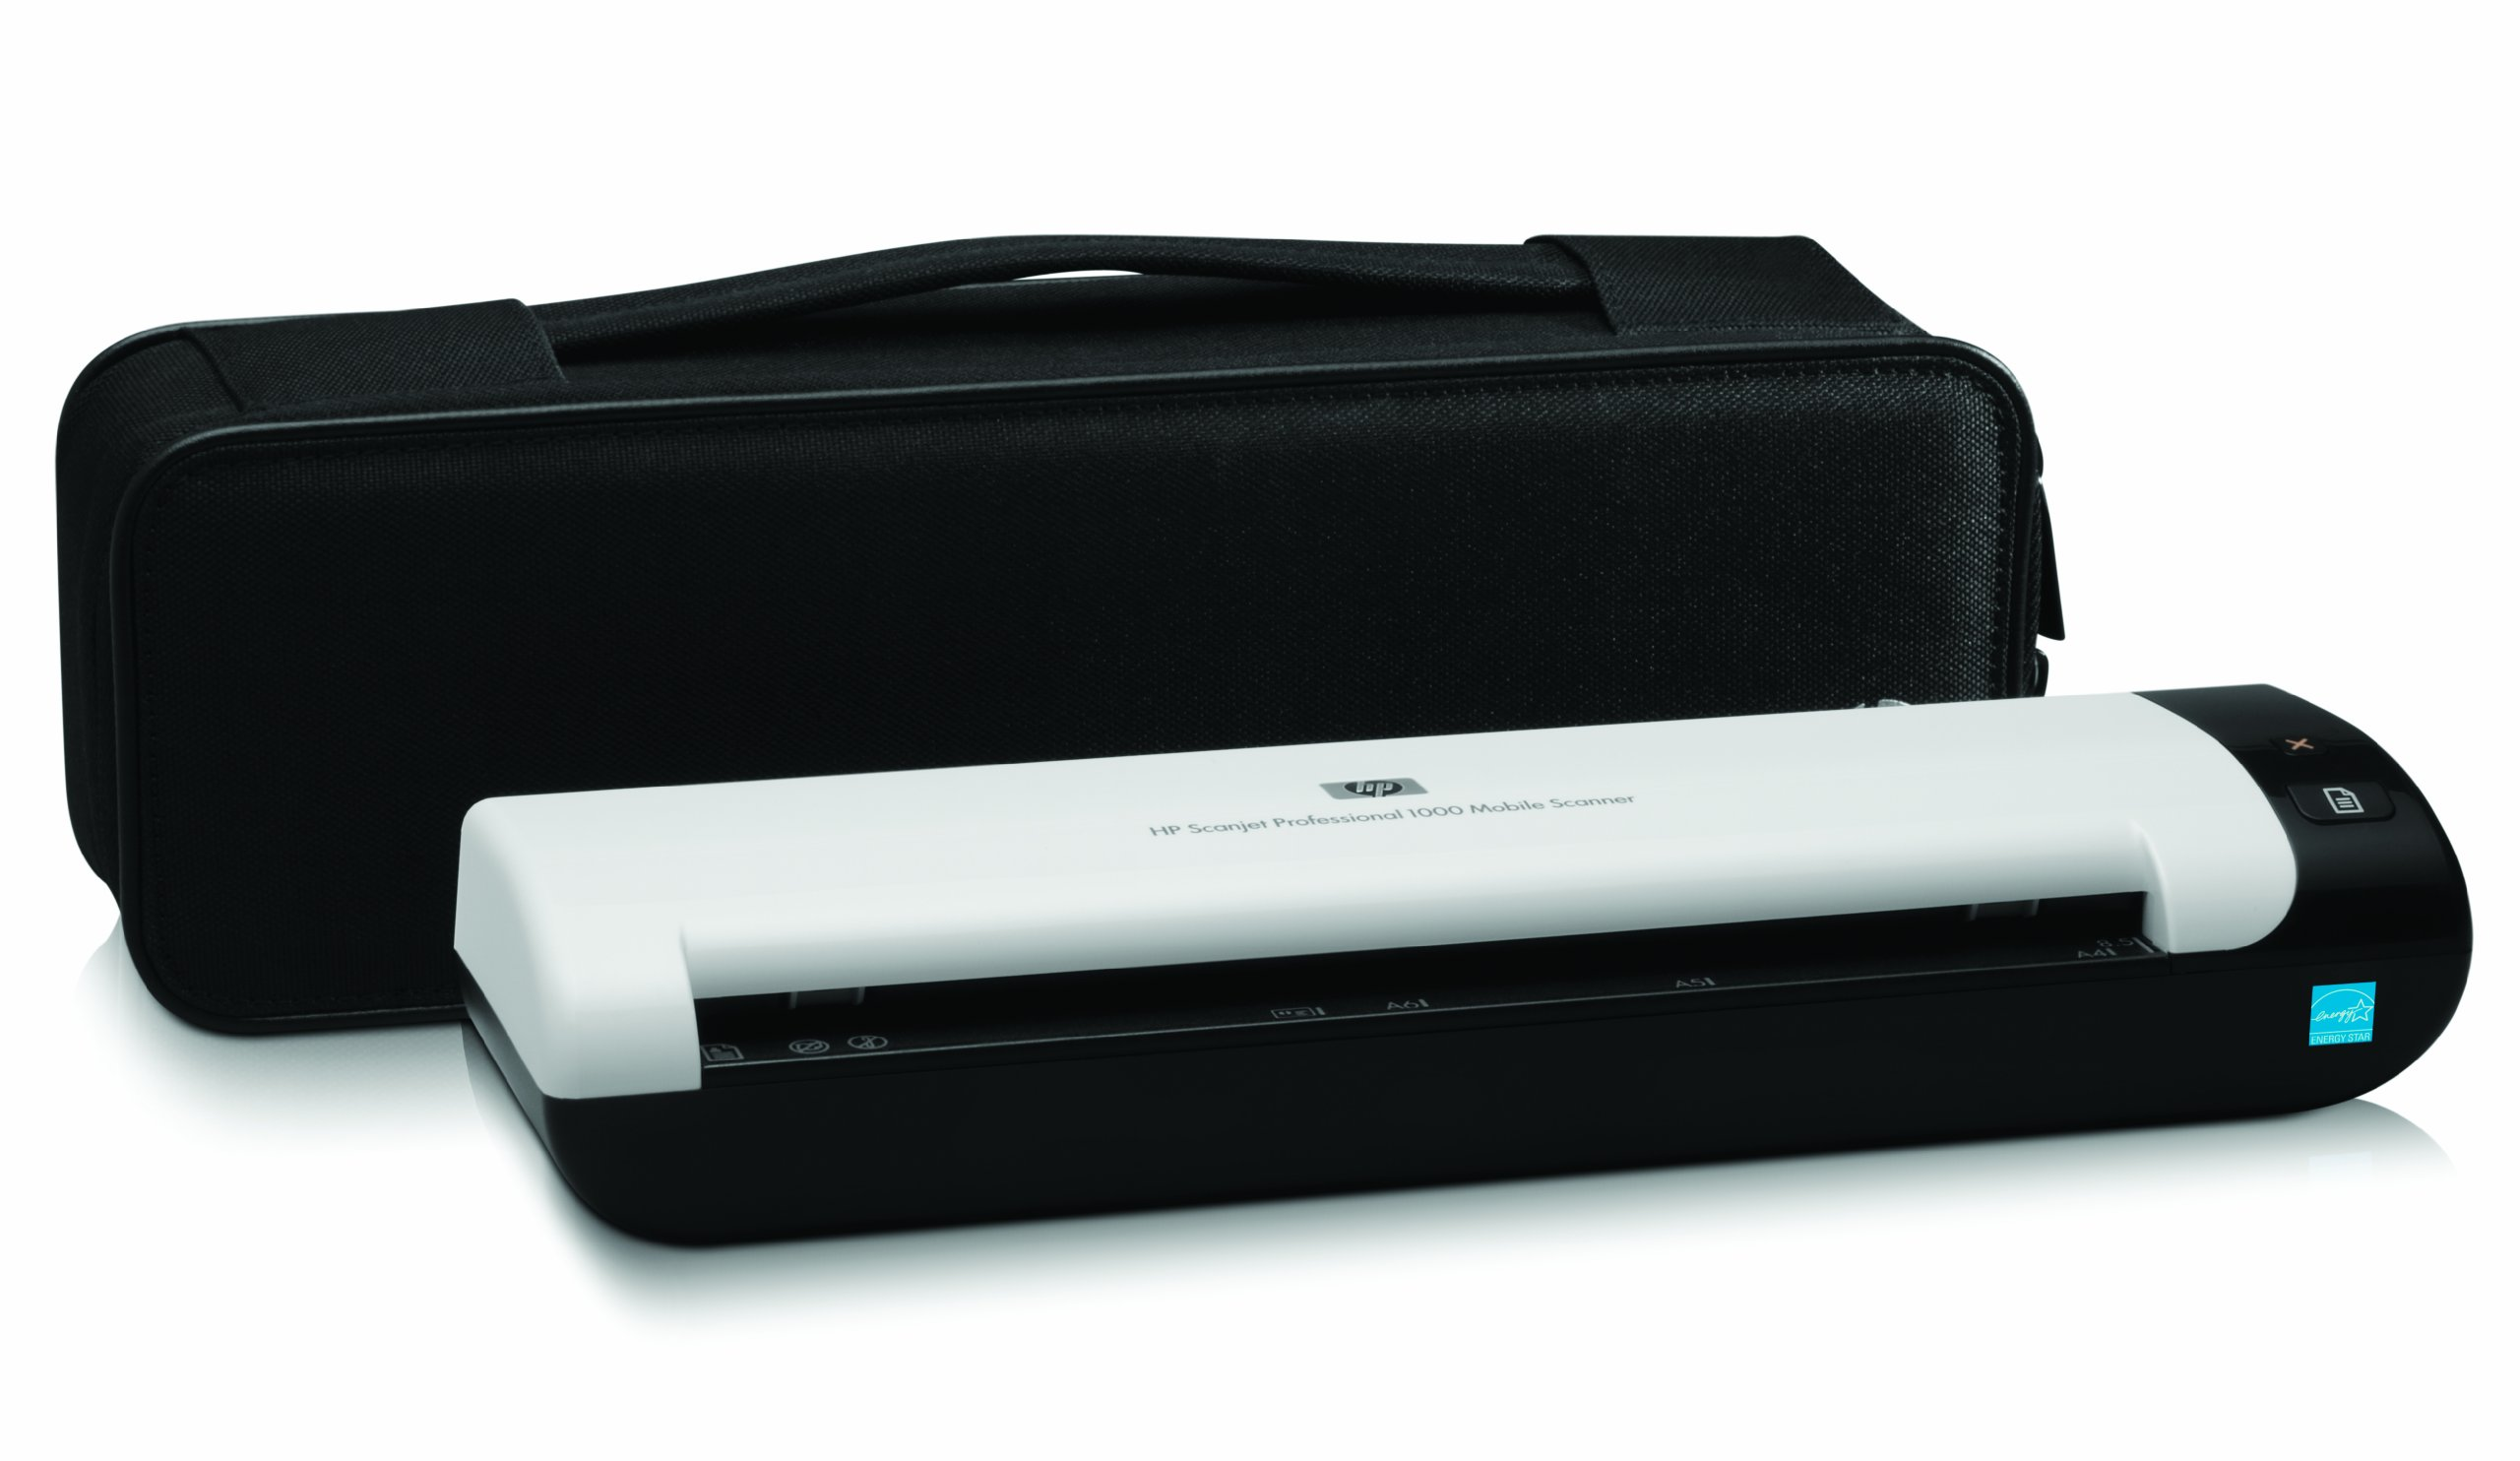 HP Scanjet Professional 1000 Mobile Scanner, (L2722A) by HP (Image #2)